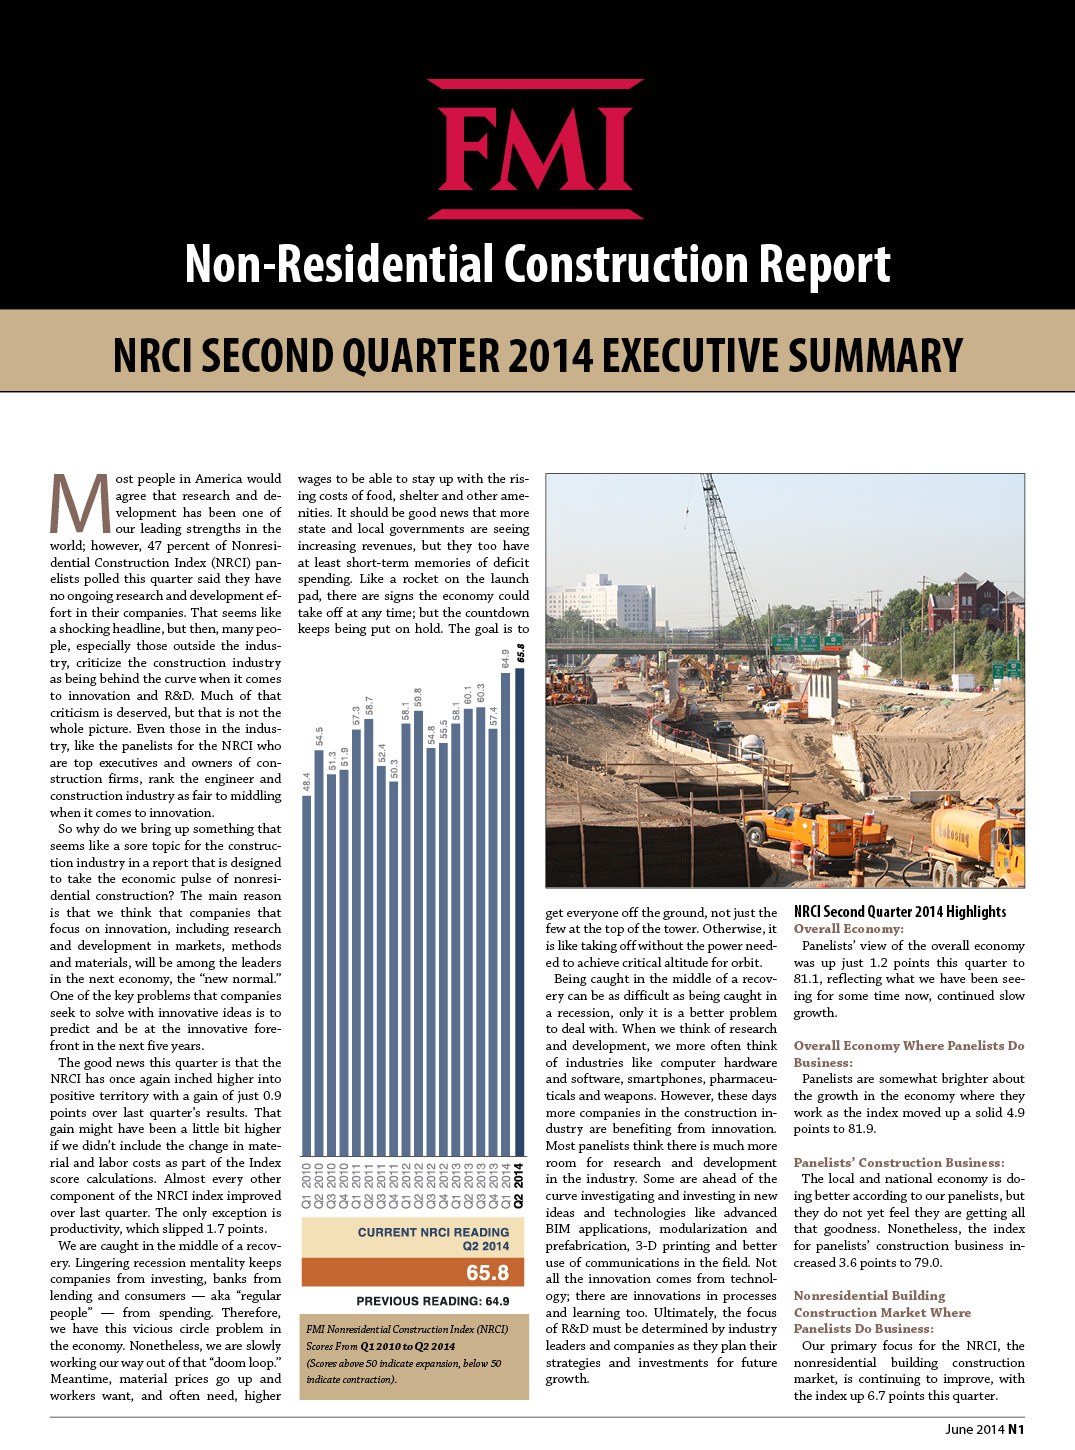 Non-Residential Construction Report1